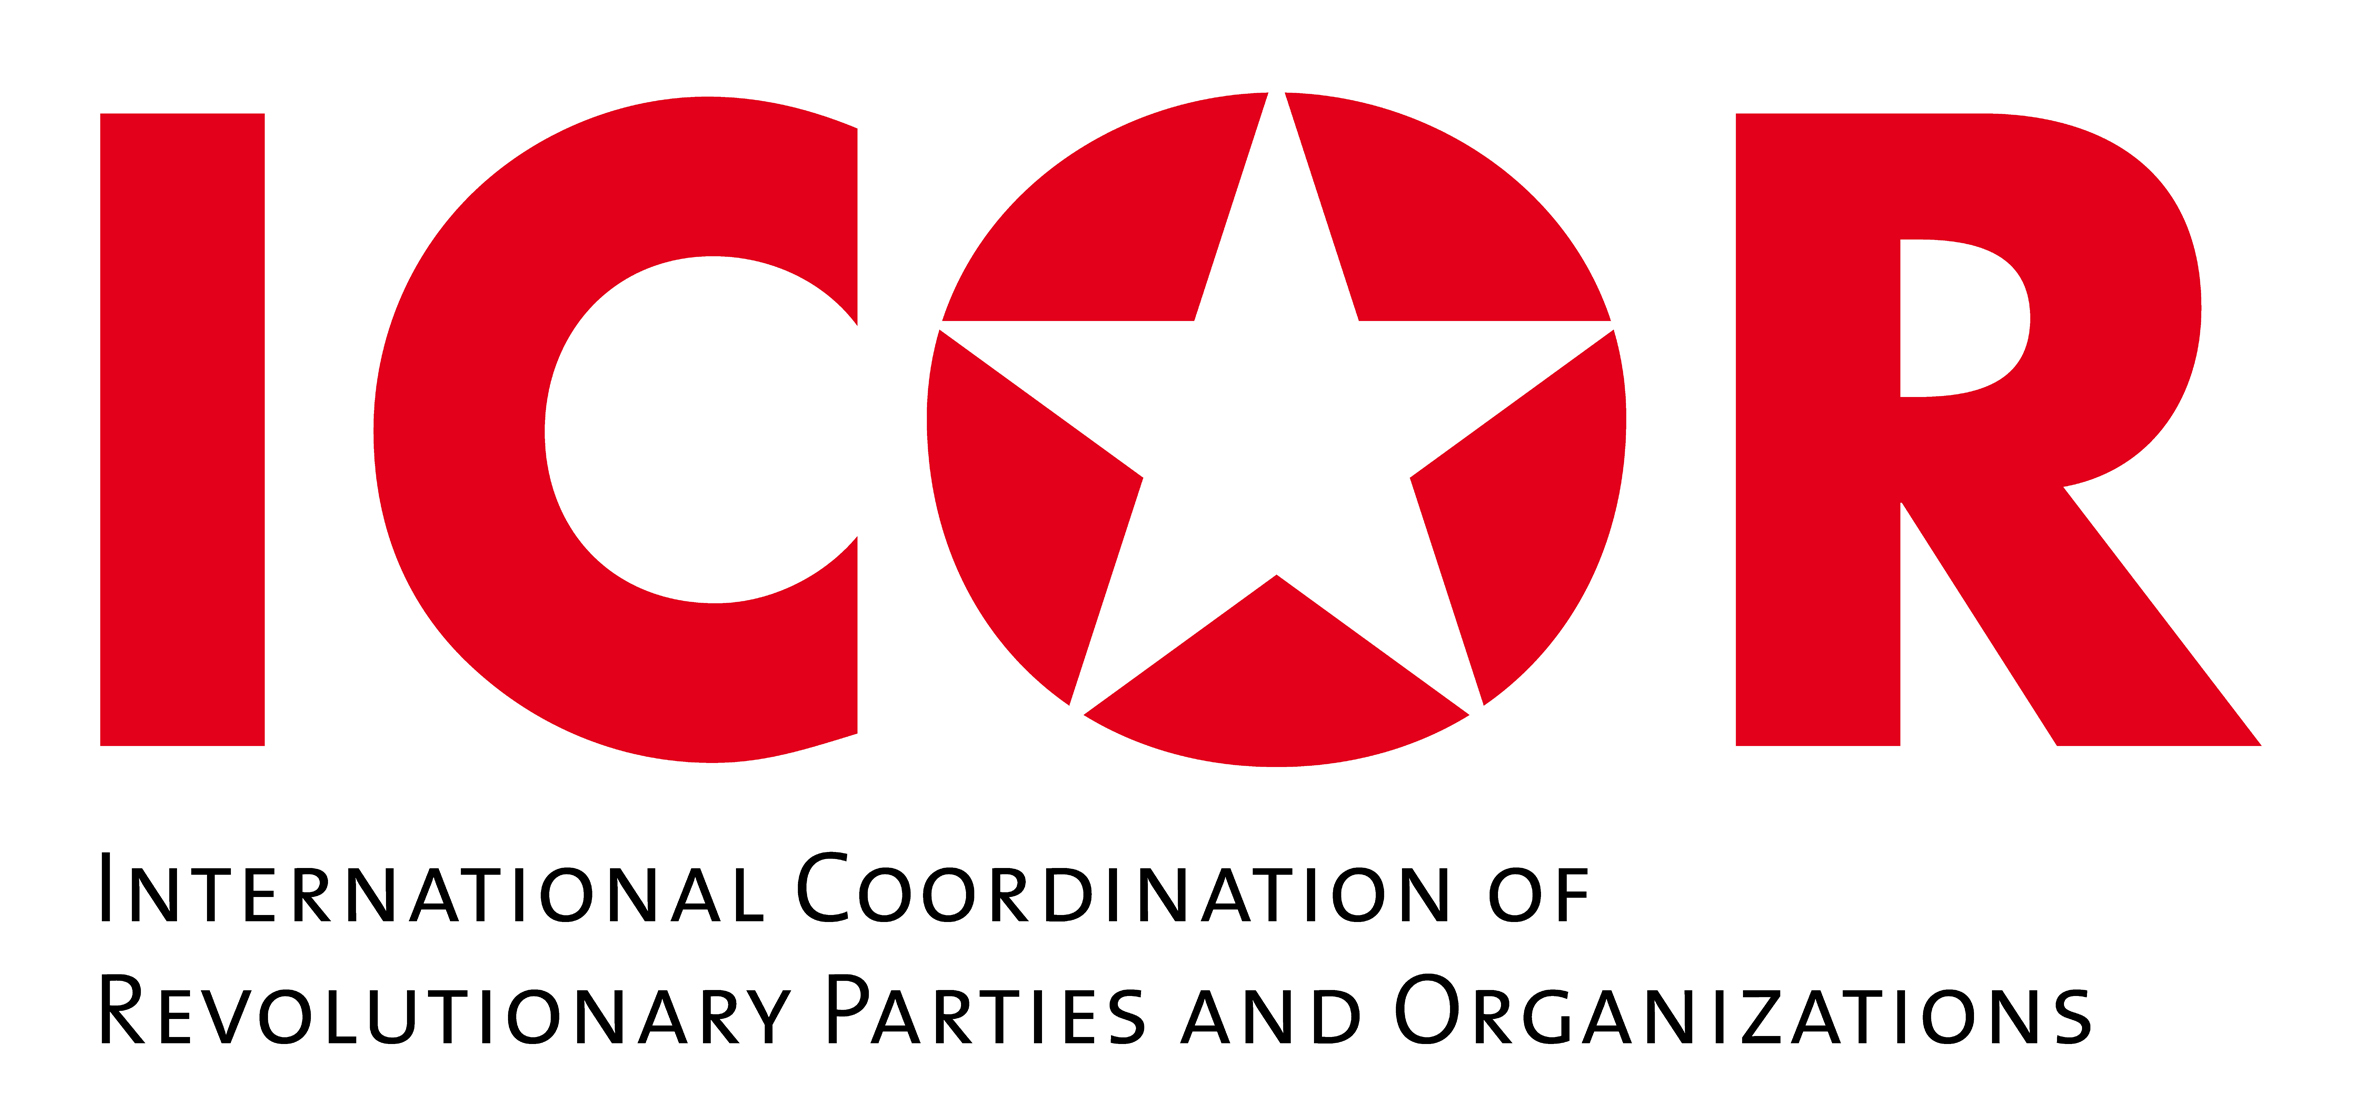 Message of Greetings from the PCR (Revolutionary Communist Party) of Argentina to the 2nd ICOR World Conference